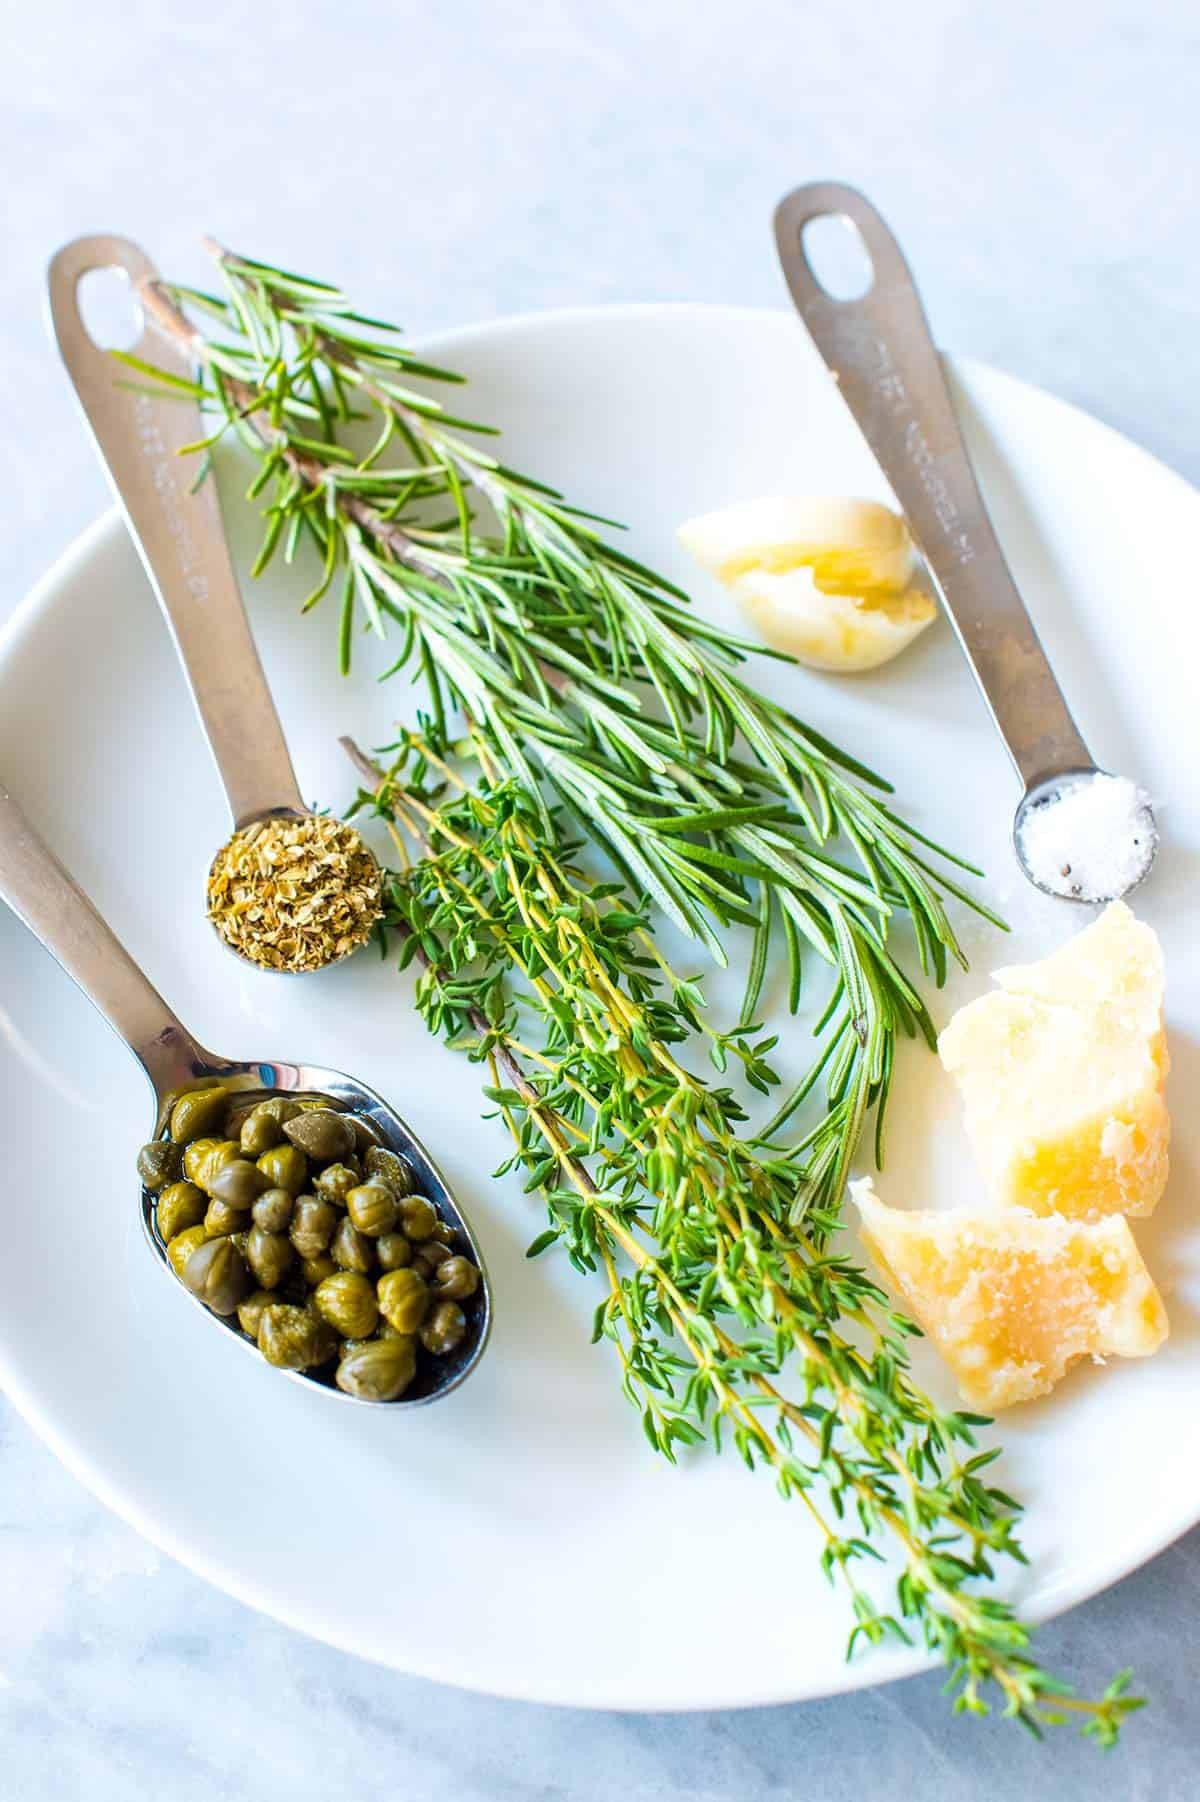 This easy and group-friendly olive oil dip comes together really quickly and it never fails. I mean, who doesn't want to dip bread into an herby, garlicky, parmesan cheese infused olive oil?